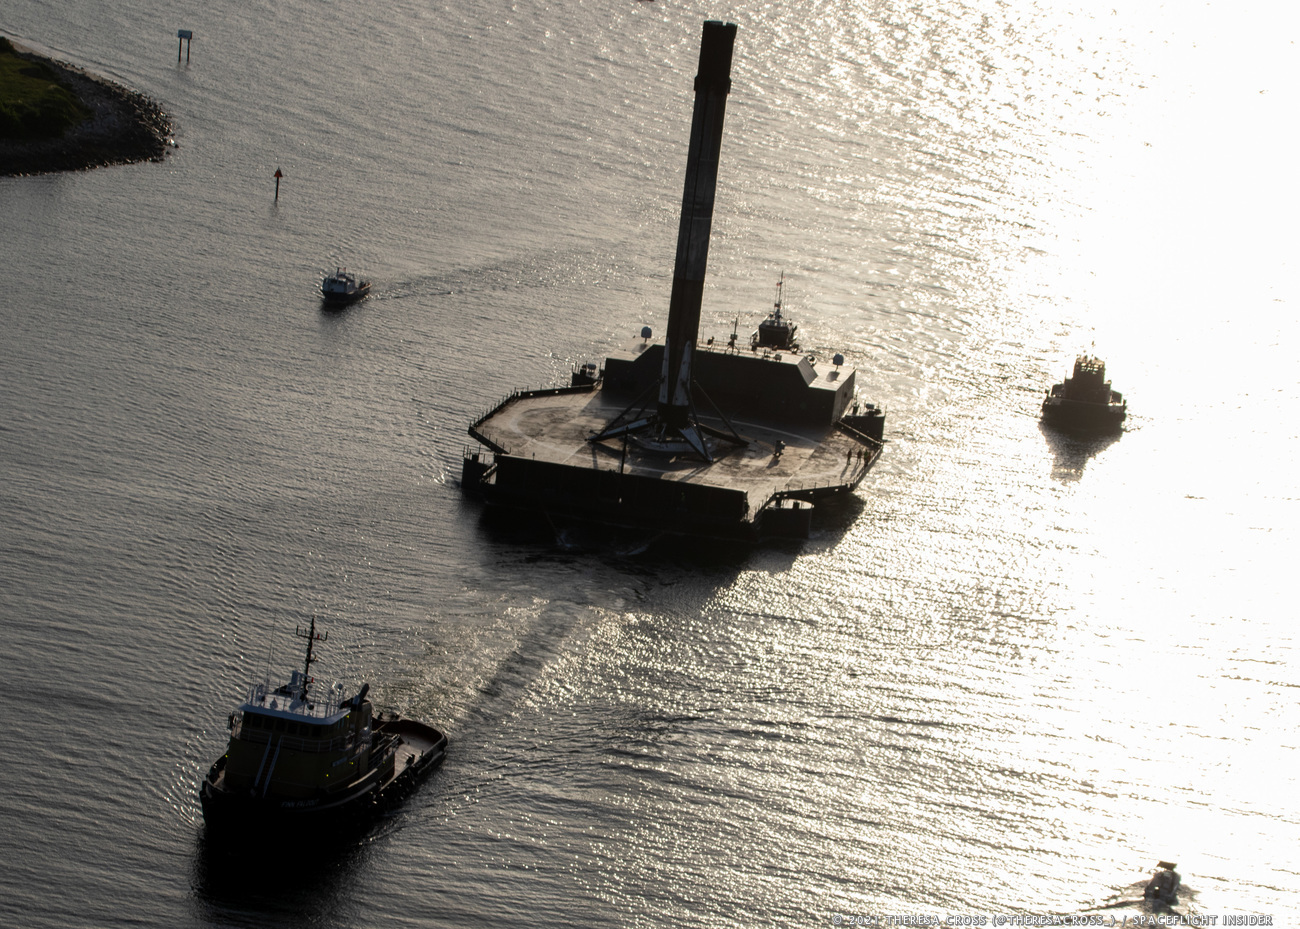 A Shortfall of Gravitas enters Port Canaveral with its Falcon 9 catch. Credit: Theresa Cross / Spaceflight Insider